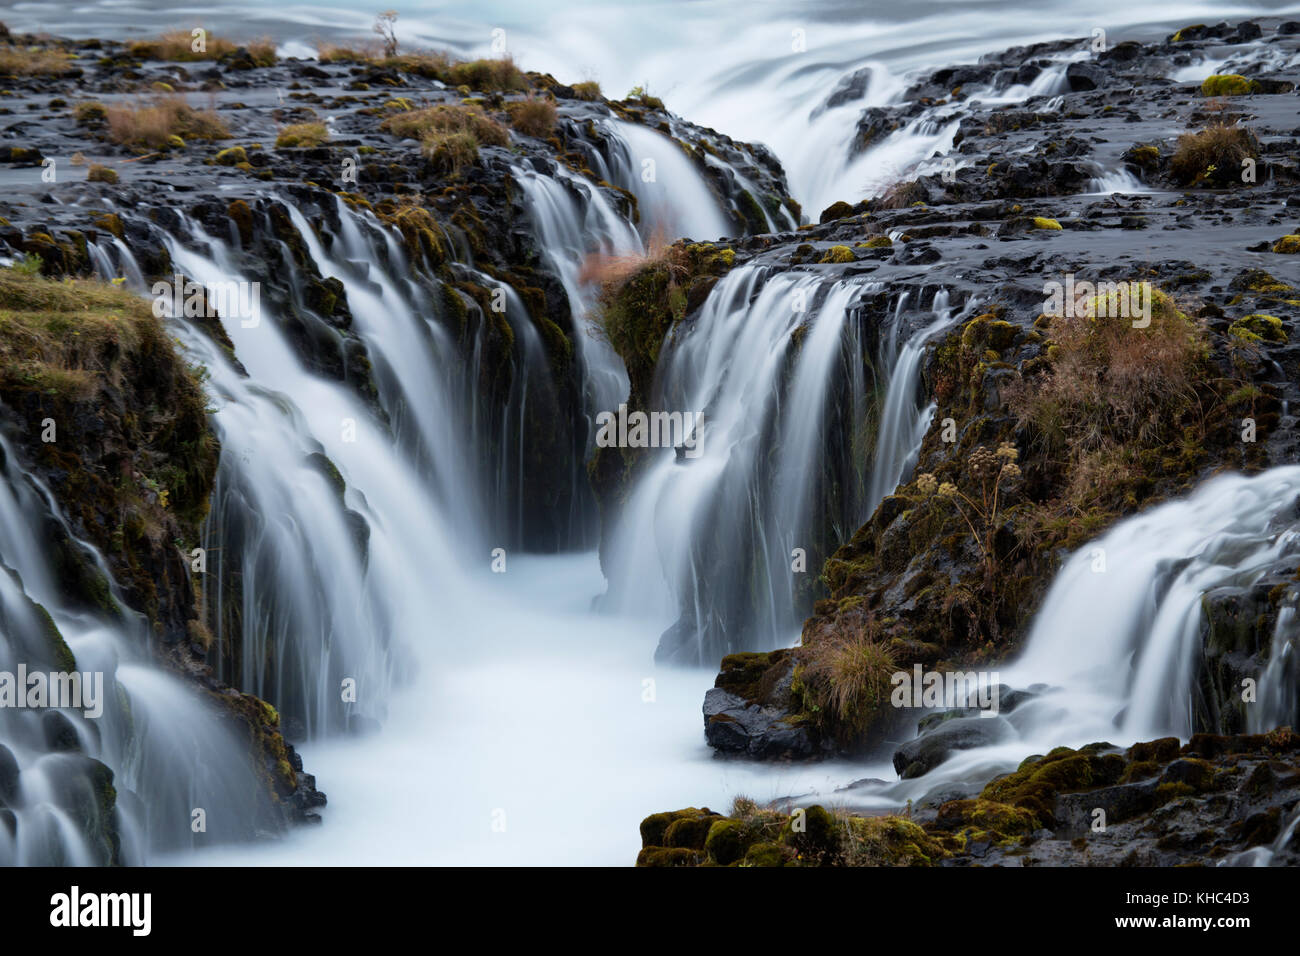 Brúarárfoss waterfall on the Golden Circle, a popular tourist route in Iceland. - Stock Image